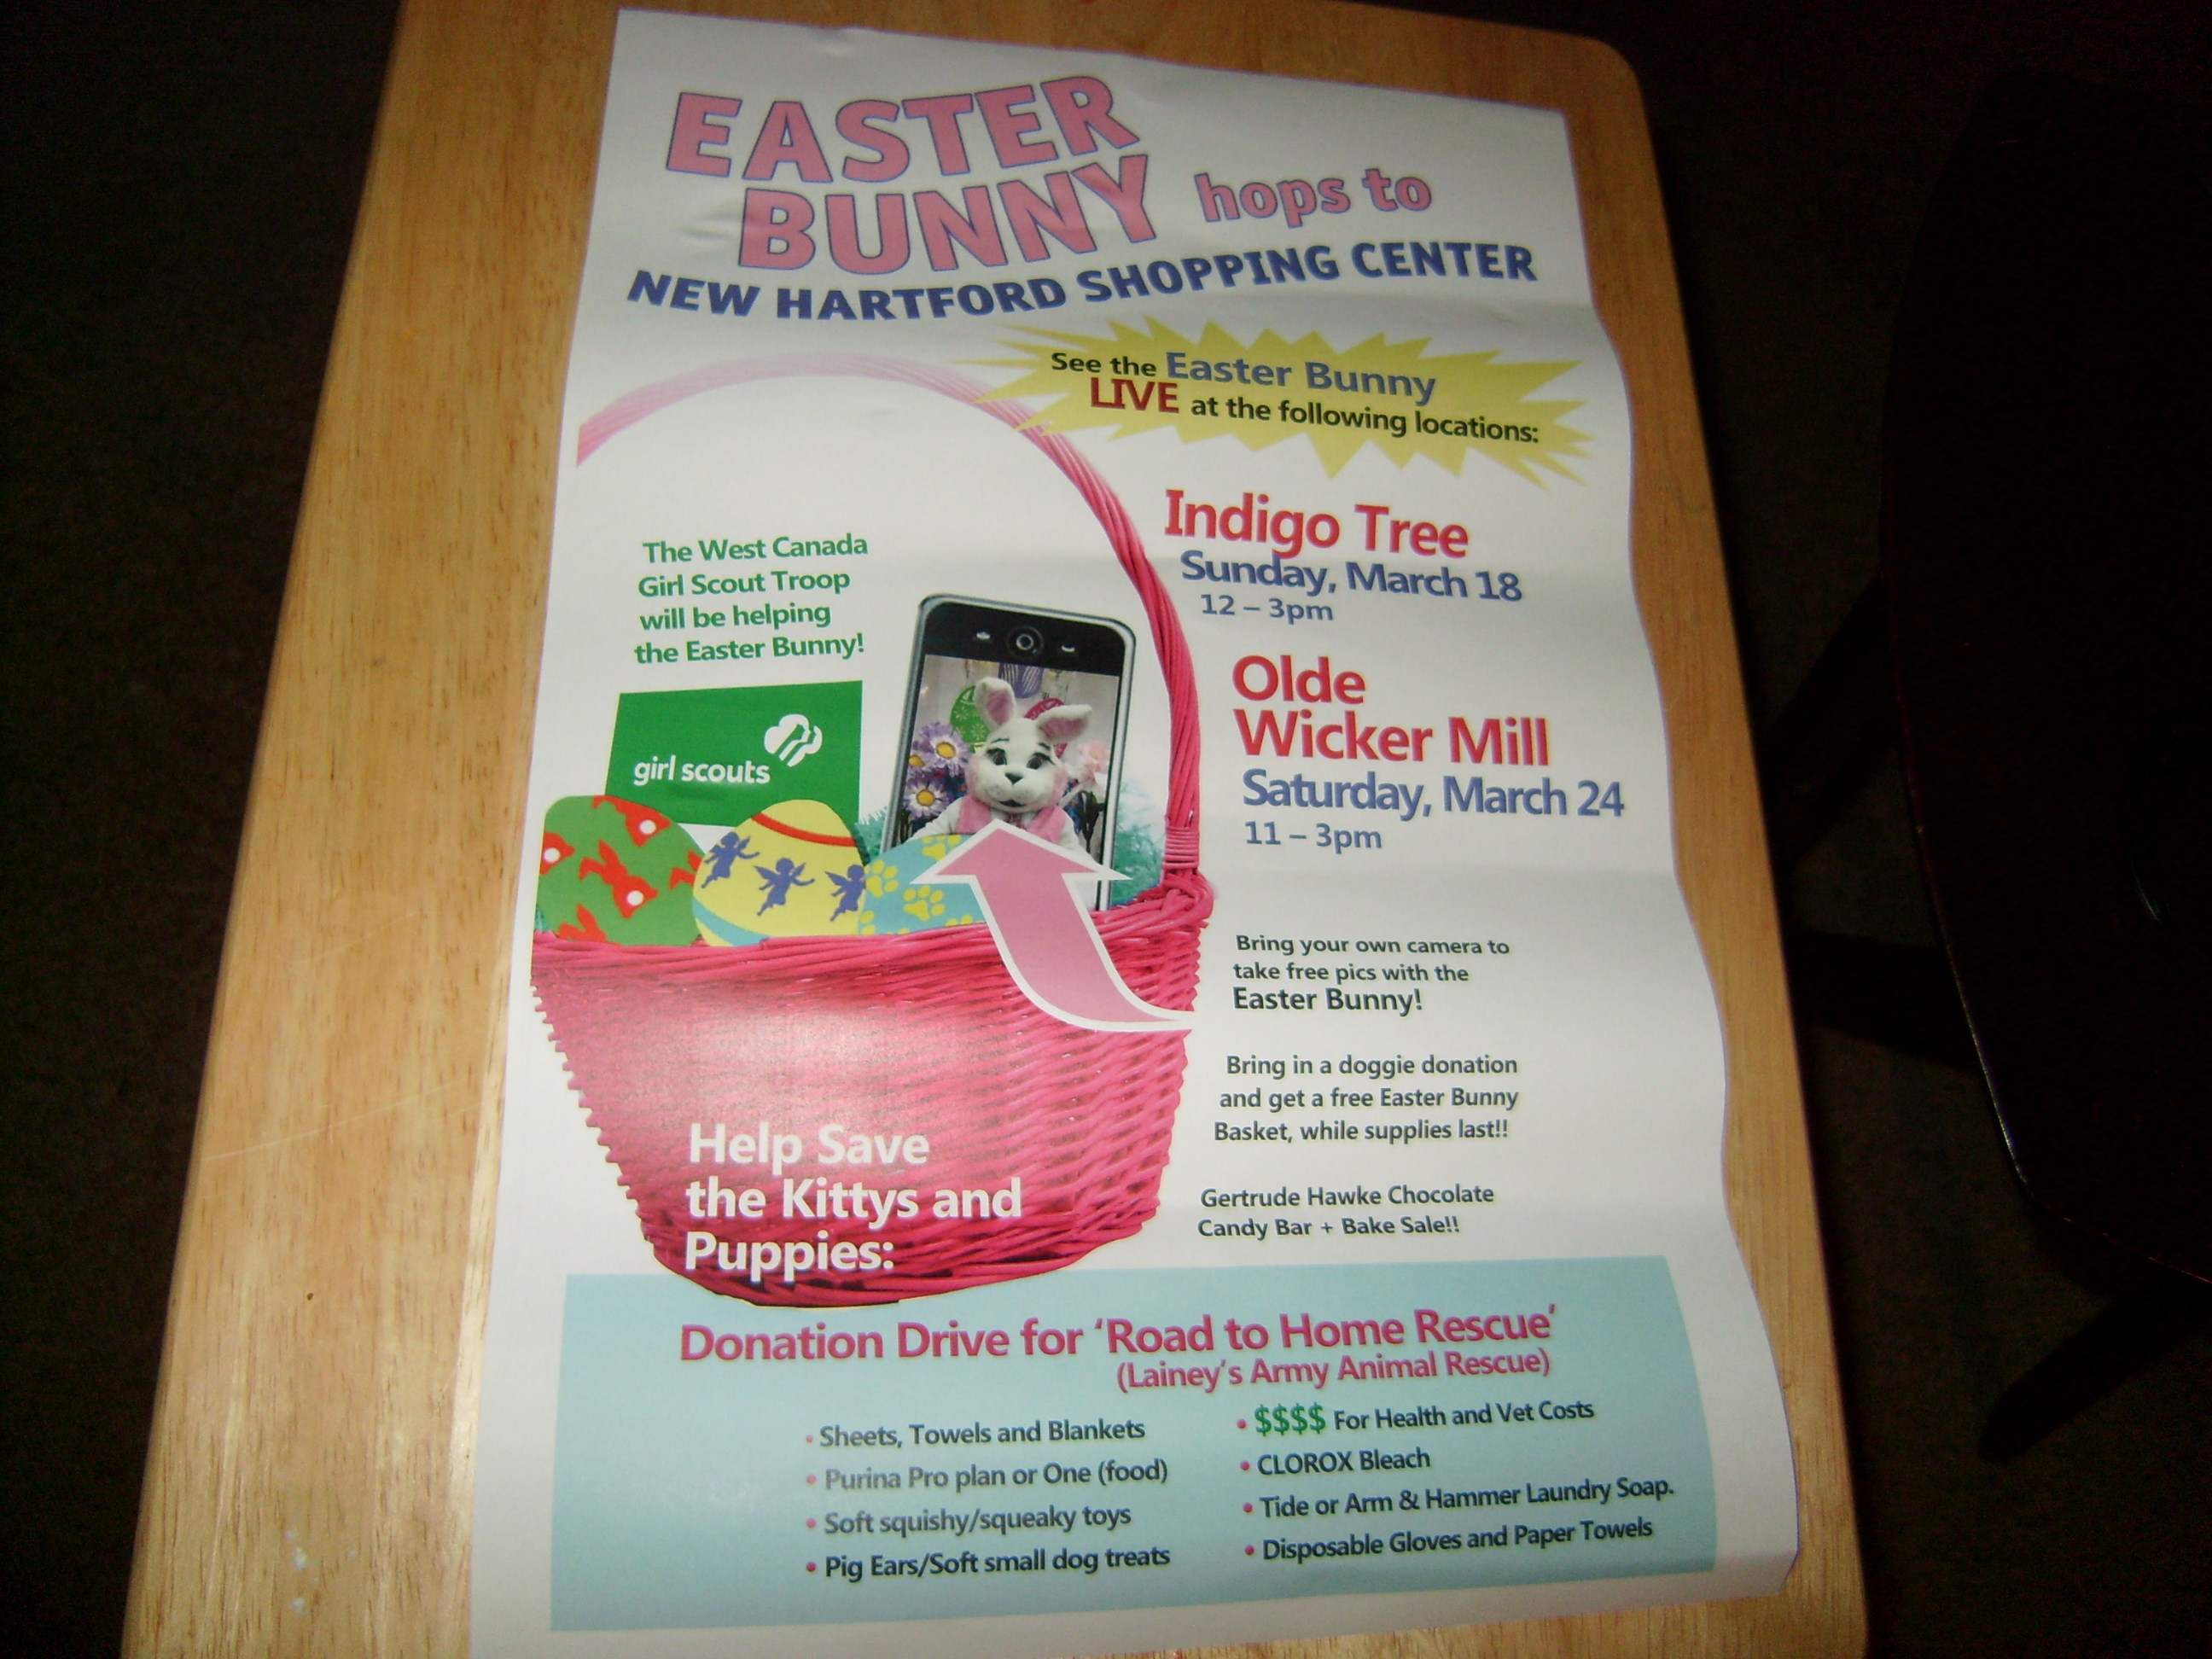 Easter Bunny to help Lainey's Army animal rescue @ | | |